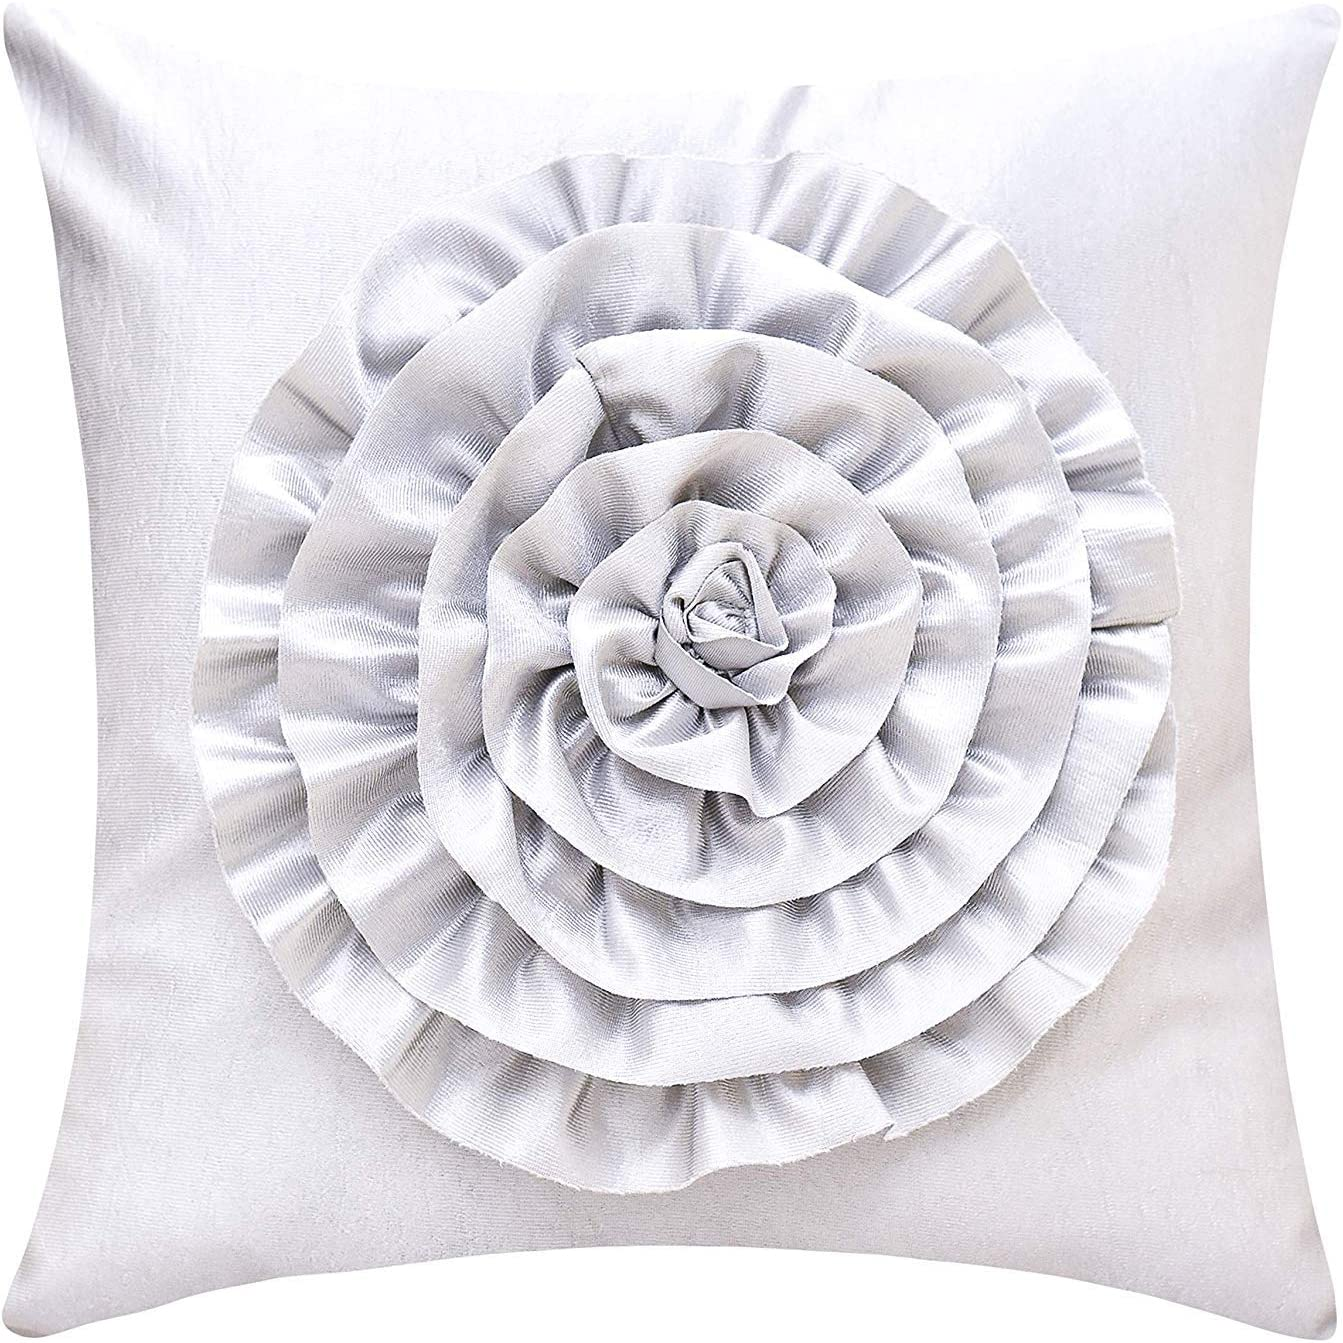 The White Petals Silver Throw Pillow Cover (3D Flower, 18x18 inch, Pack of 1)